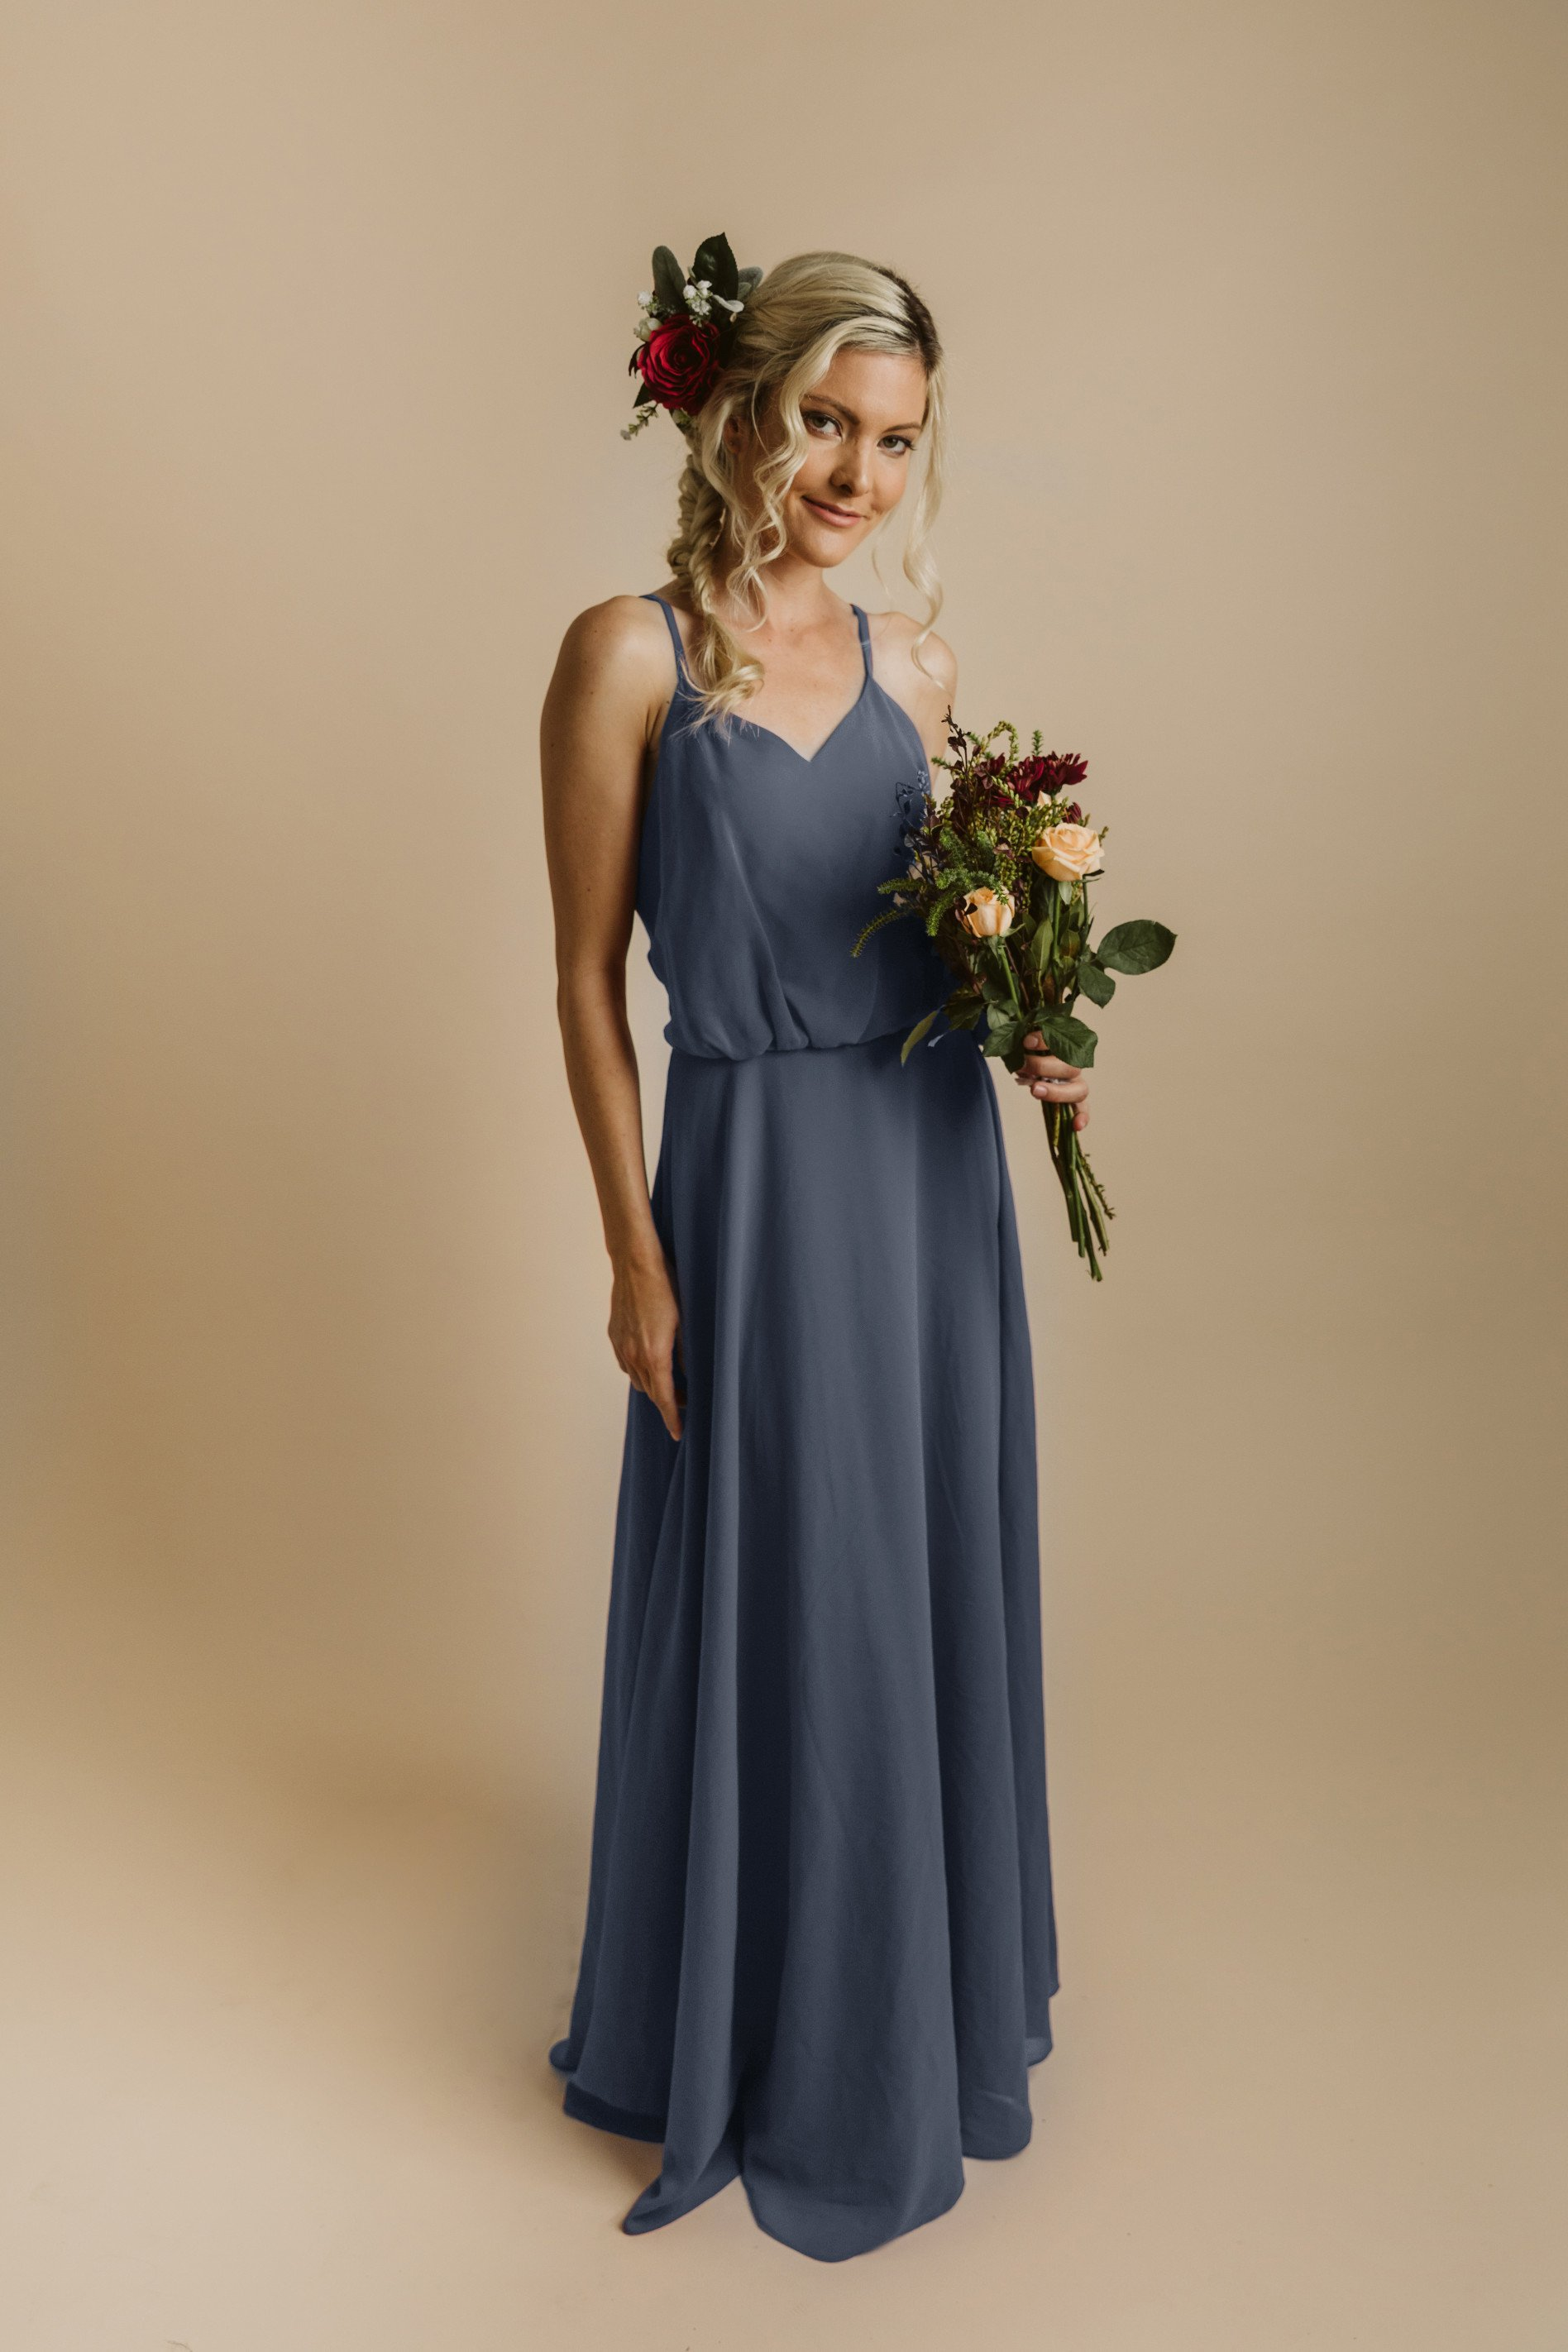 Annabelle Dress in Stone Blue - Baby\'s Breath Bridesmaids